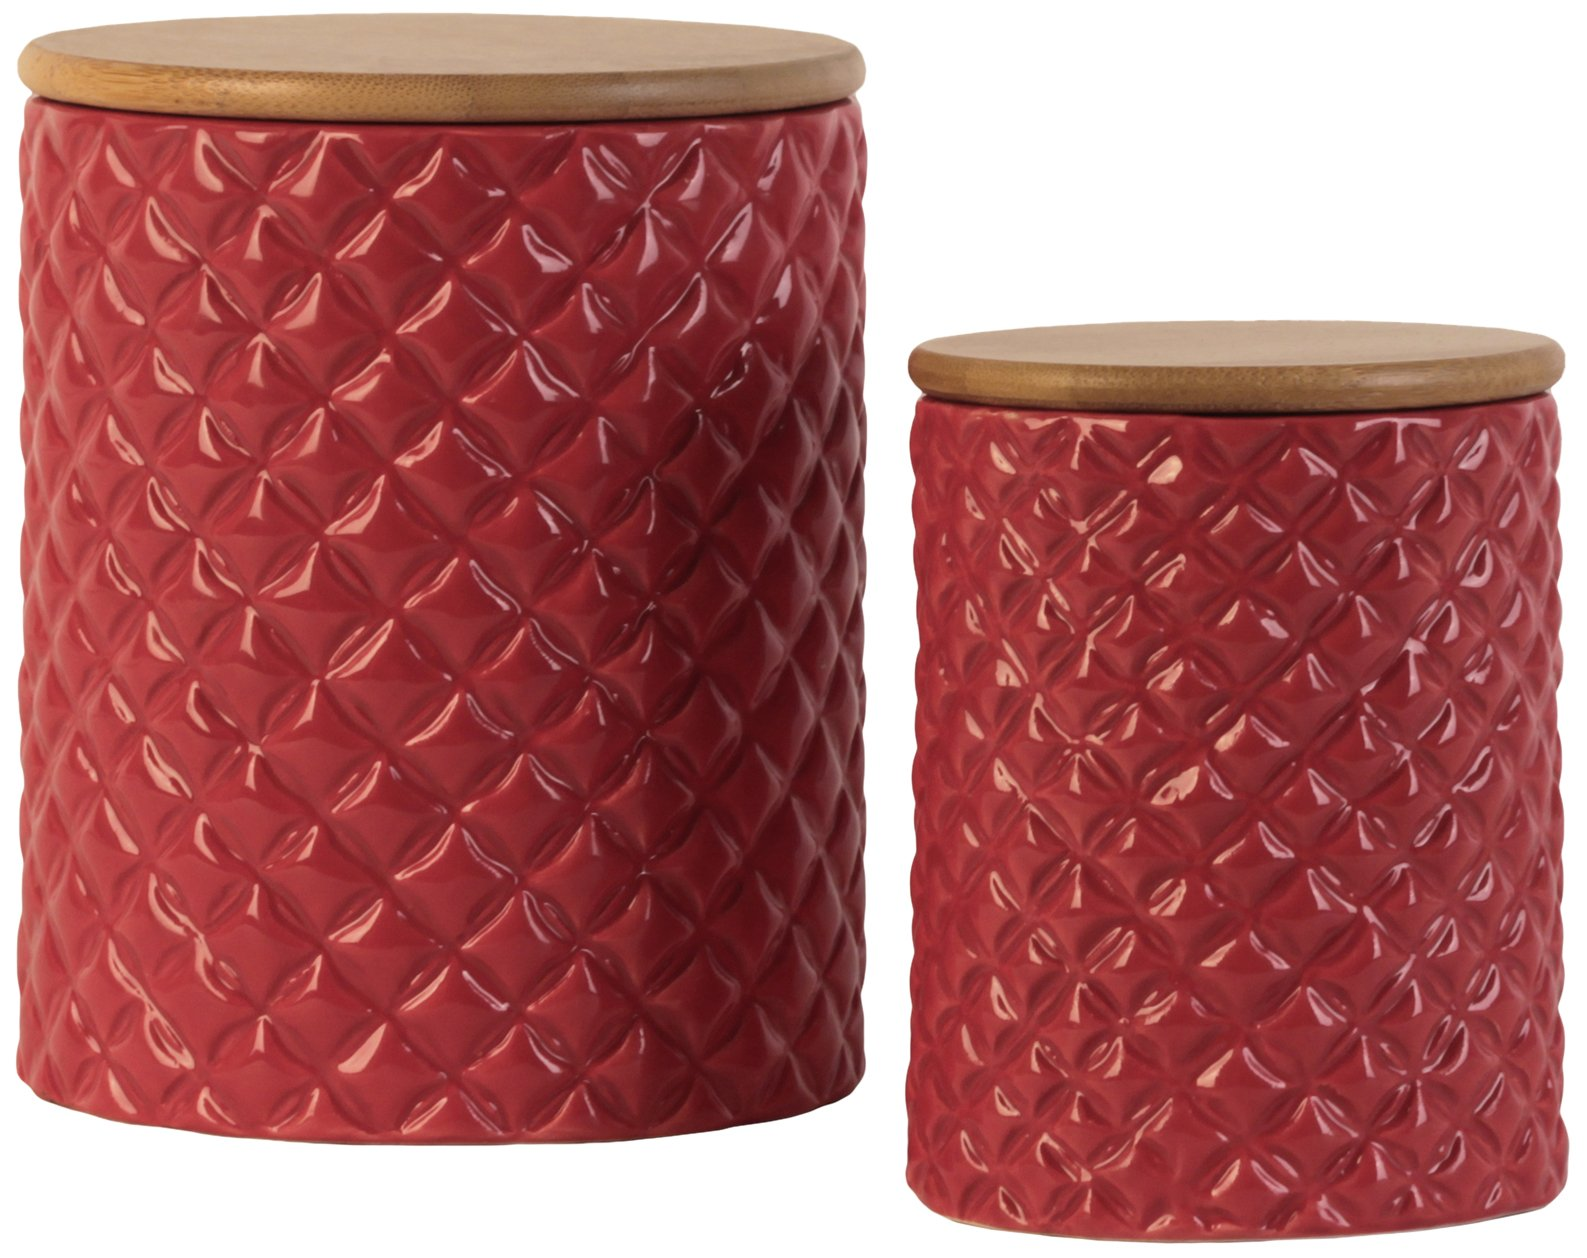 Urban Trends 50935 Ceramic Round Canister with Lattice Diamond Design Body/Bamboo Lid Gloss Finish Red 2 Piece